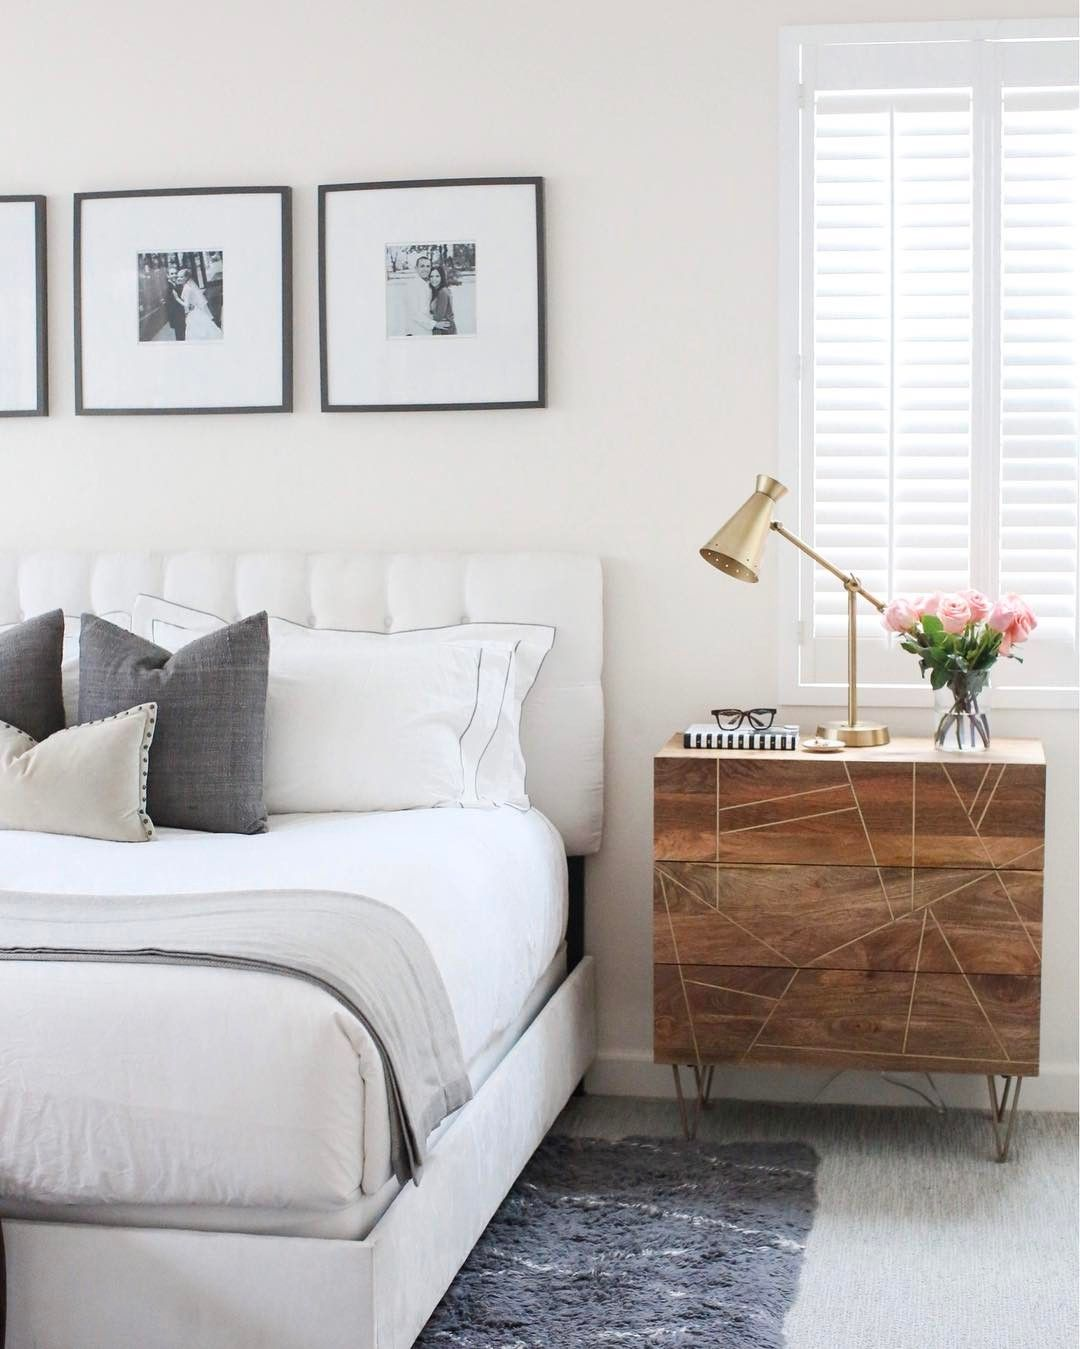 Clean And Modern Style Bedroom Merricksart Bedroom Has An Elevated Simple Style With Her Simpl Modern Style Bedroom Bedroom Interior Interior Design Bedroom